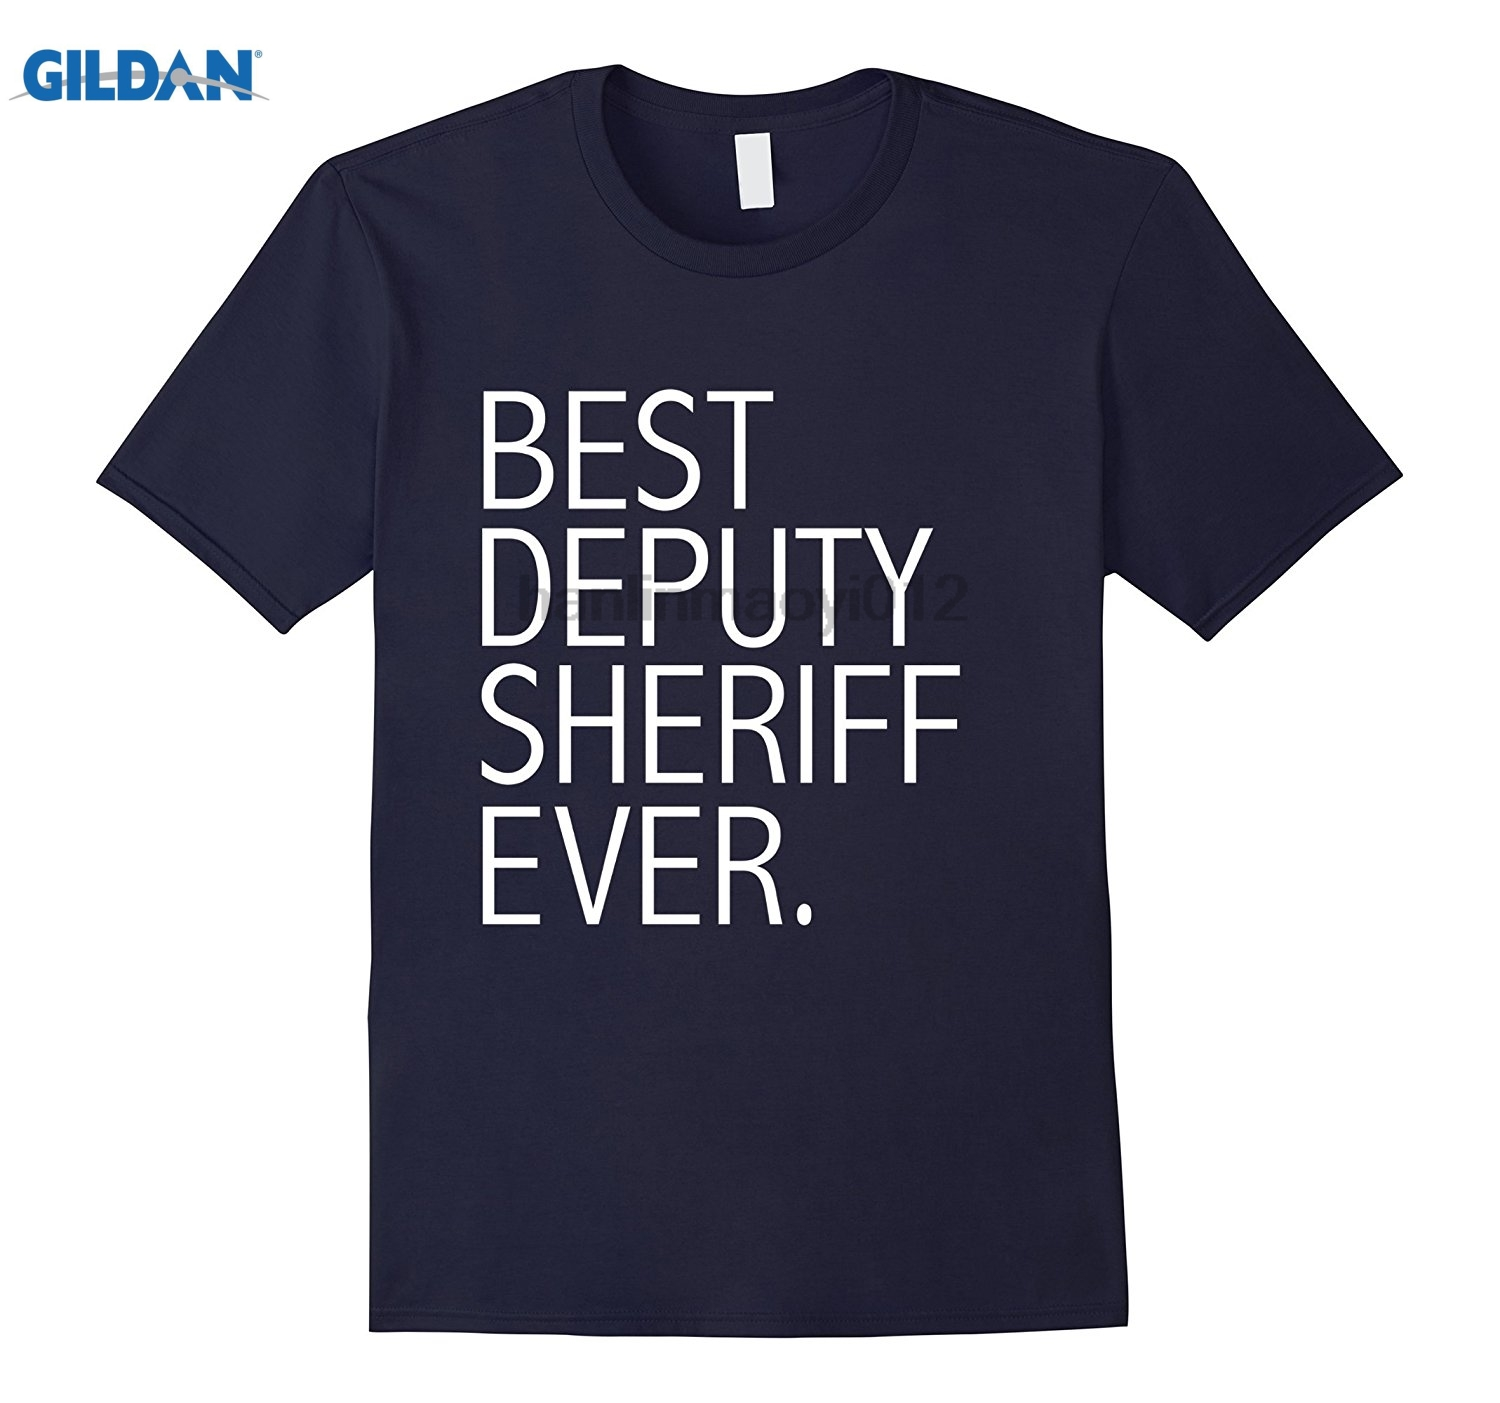 GILDAN Best Deputy Sheriff Ever Police Officer Cop Law Enforcement Mothers Day Ms. T-shirt ...